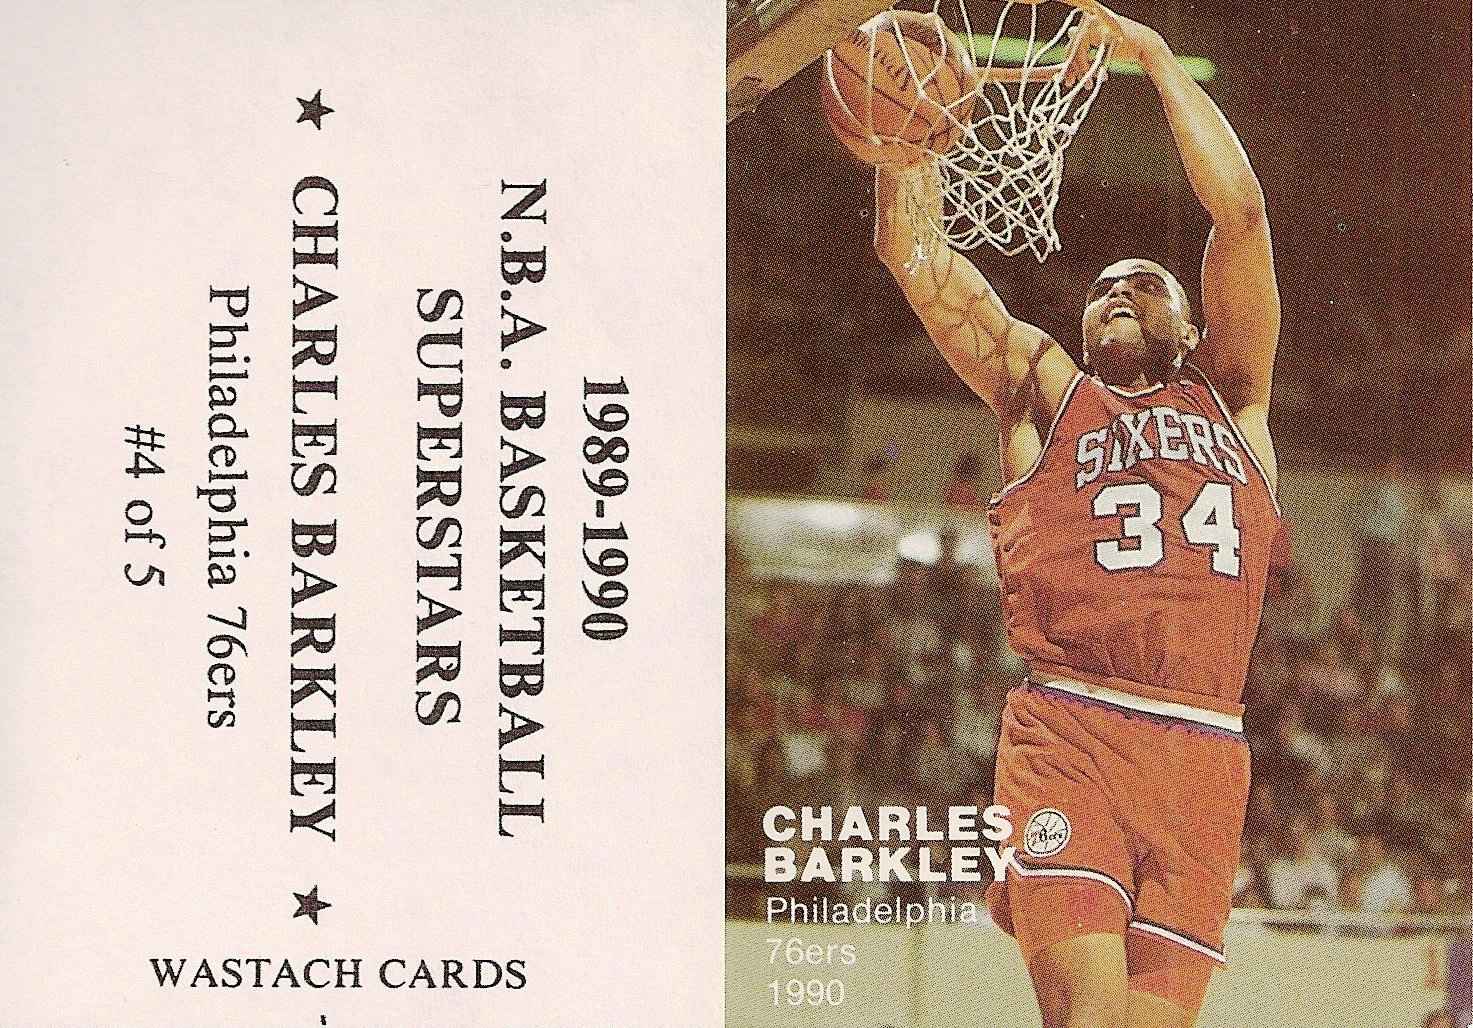 1990 Wastach Cards NBA Basketball Supertstars (5)